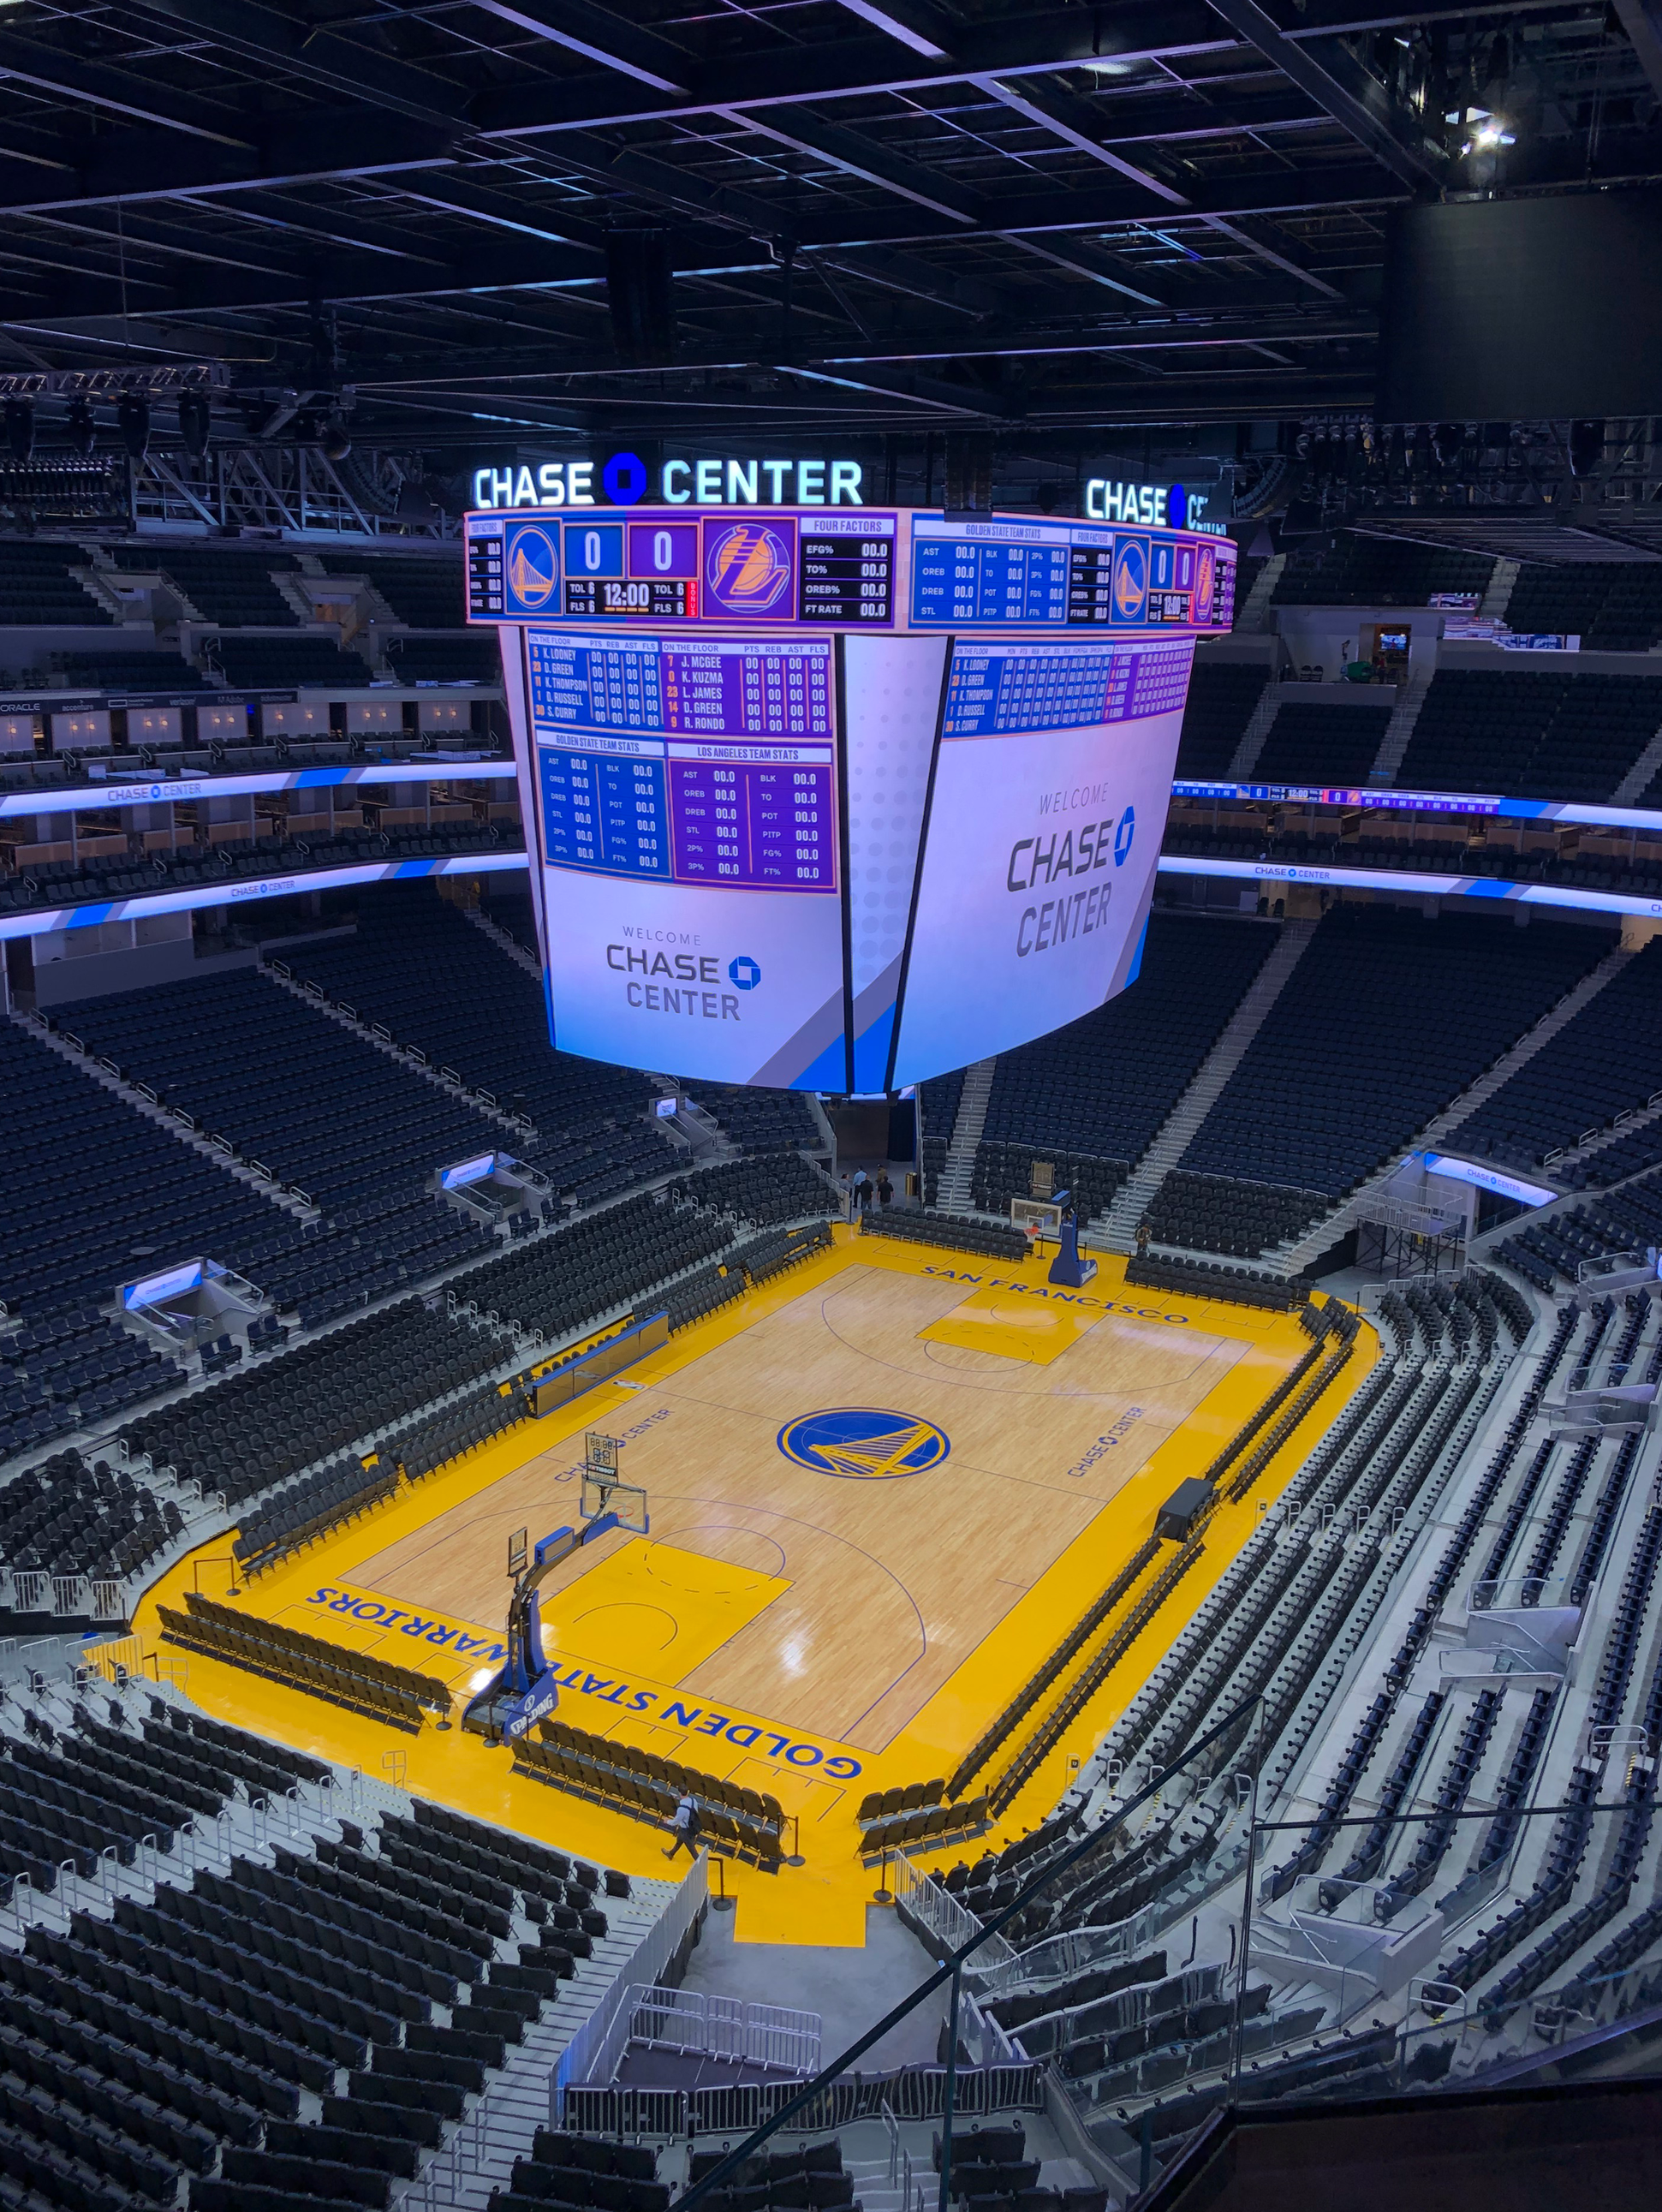 As Chase Center Hosts First Regular Season Golden State Warriors Game First Season Promises To Be A Year Of Discovery